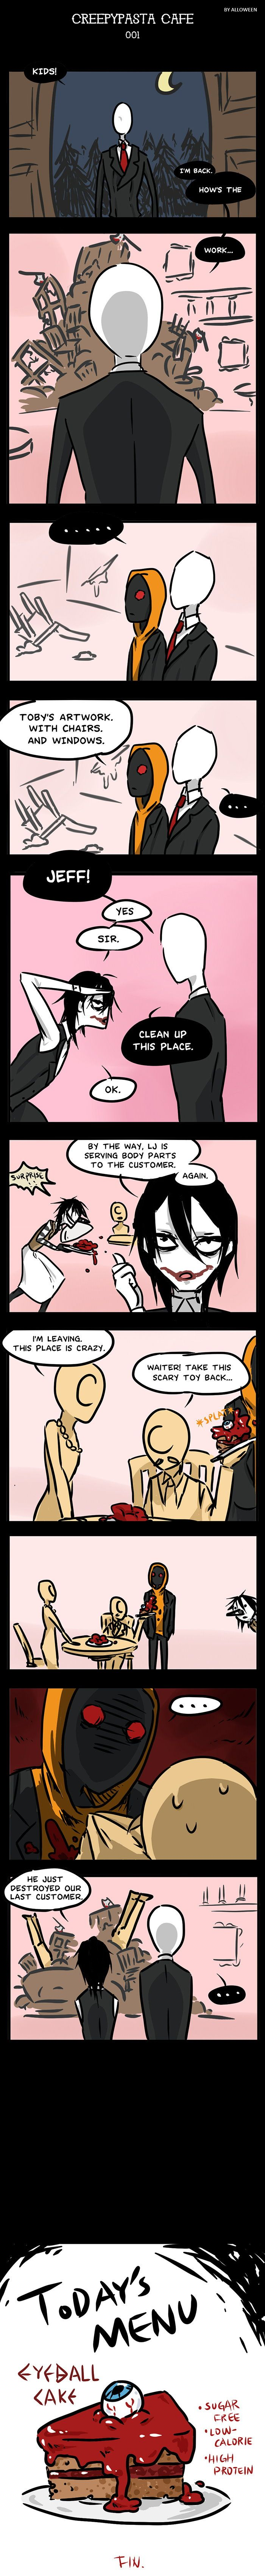 Laughing Jack / Eyeless Jack / Jeff the killer / Slenderman / Masky / Hoodie / Ticci Toby I think Slender is the owner... here's the comics: Creepypasta Cafe 001